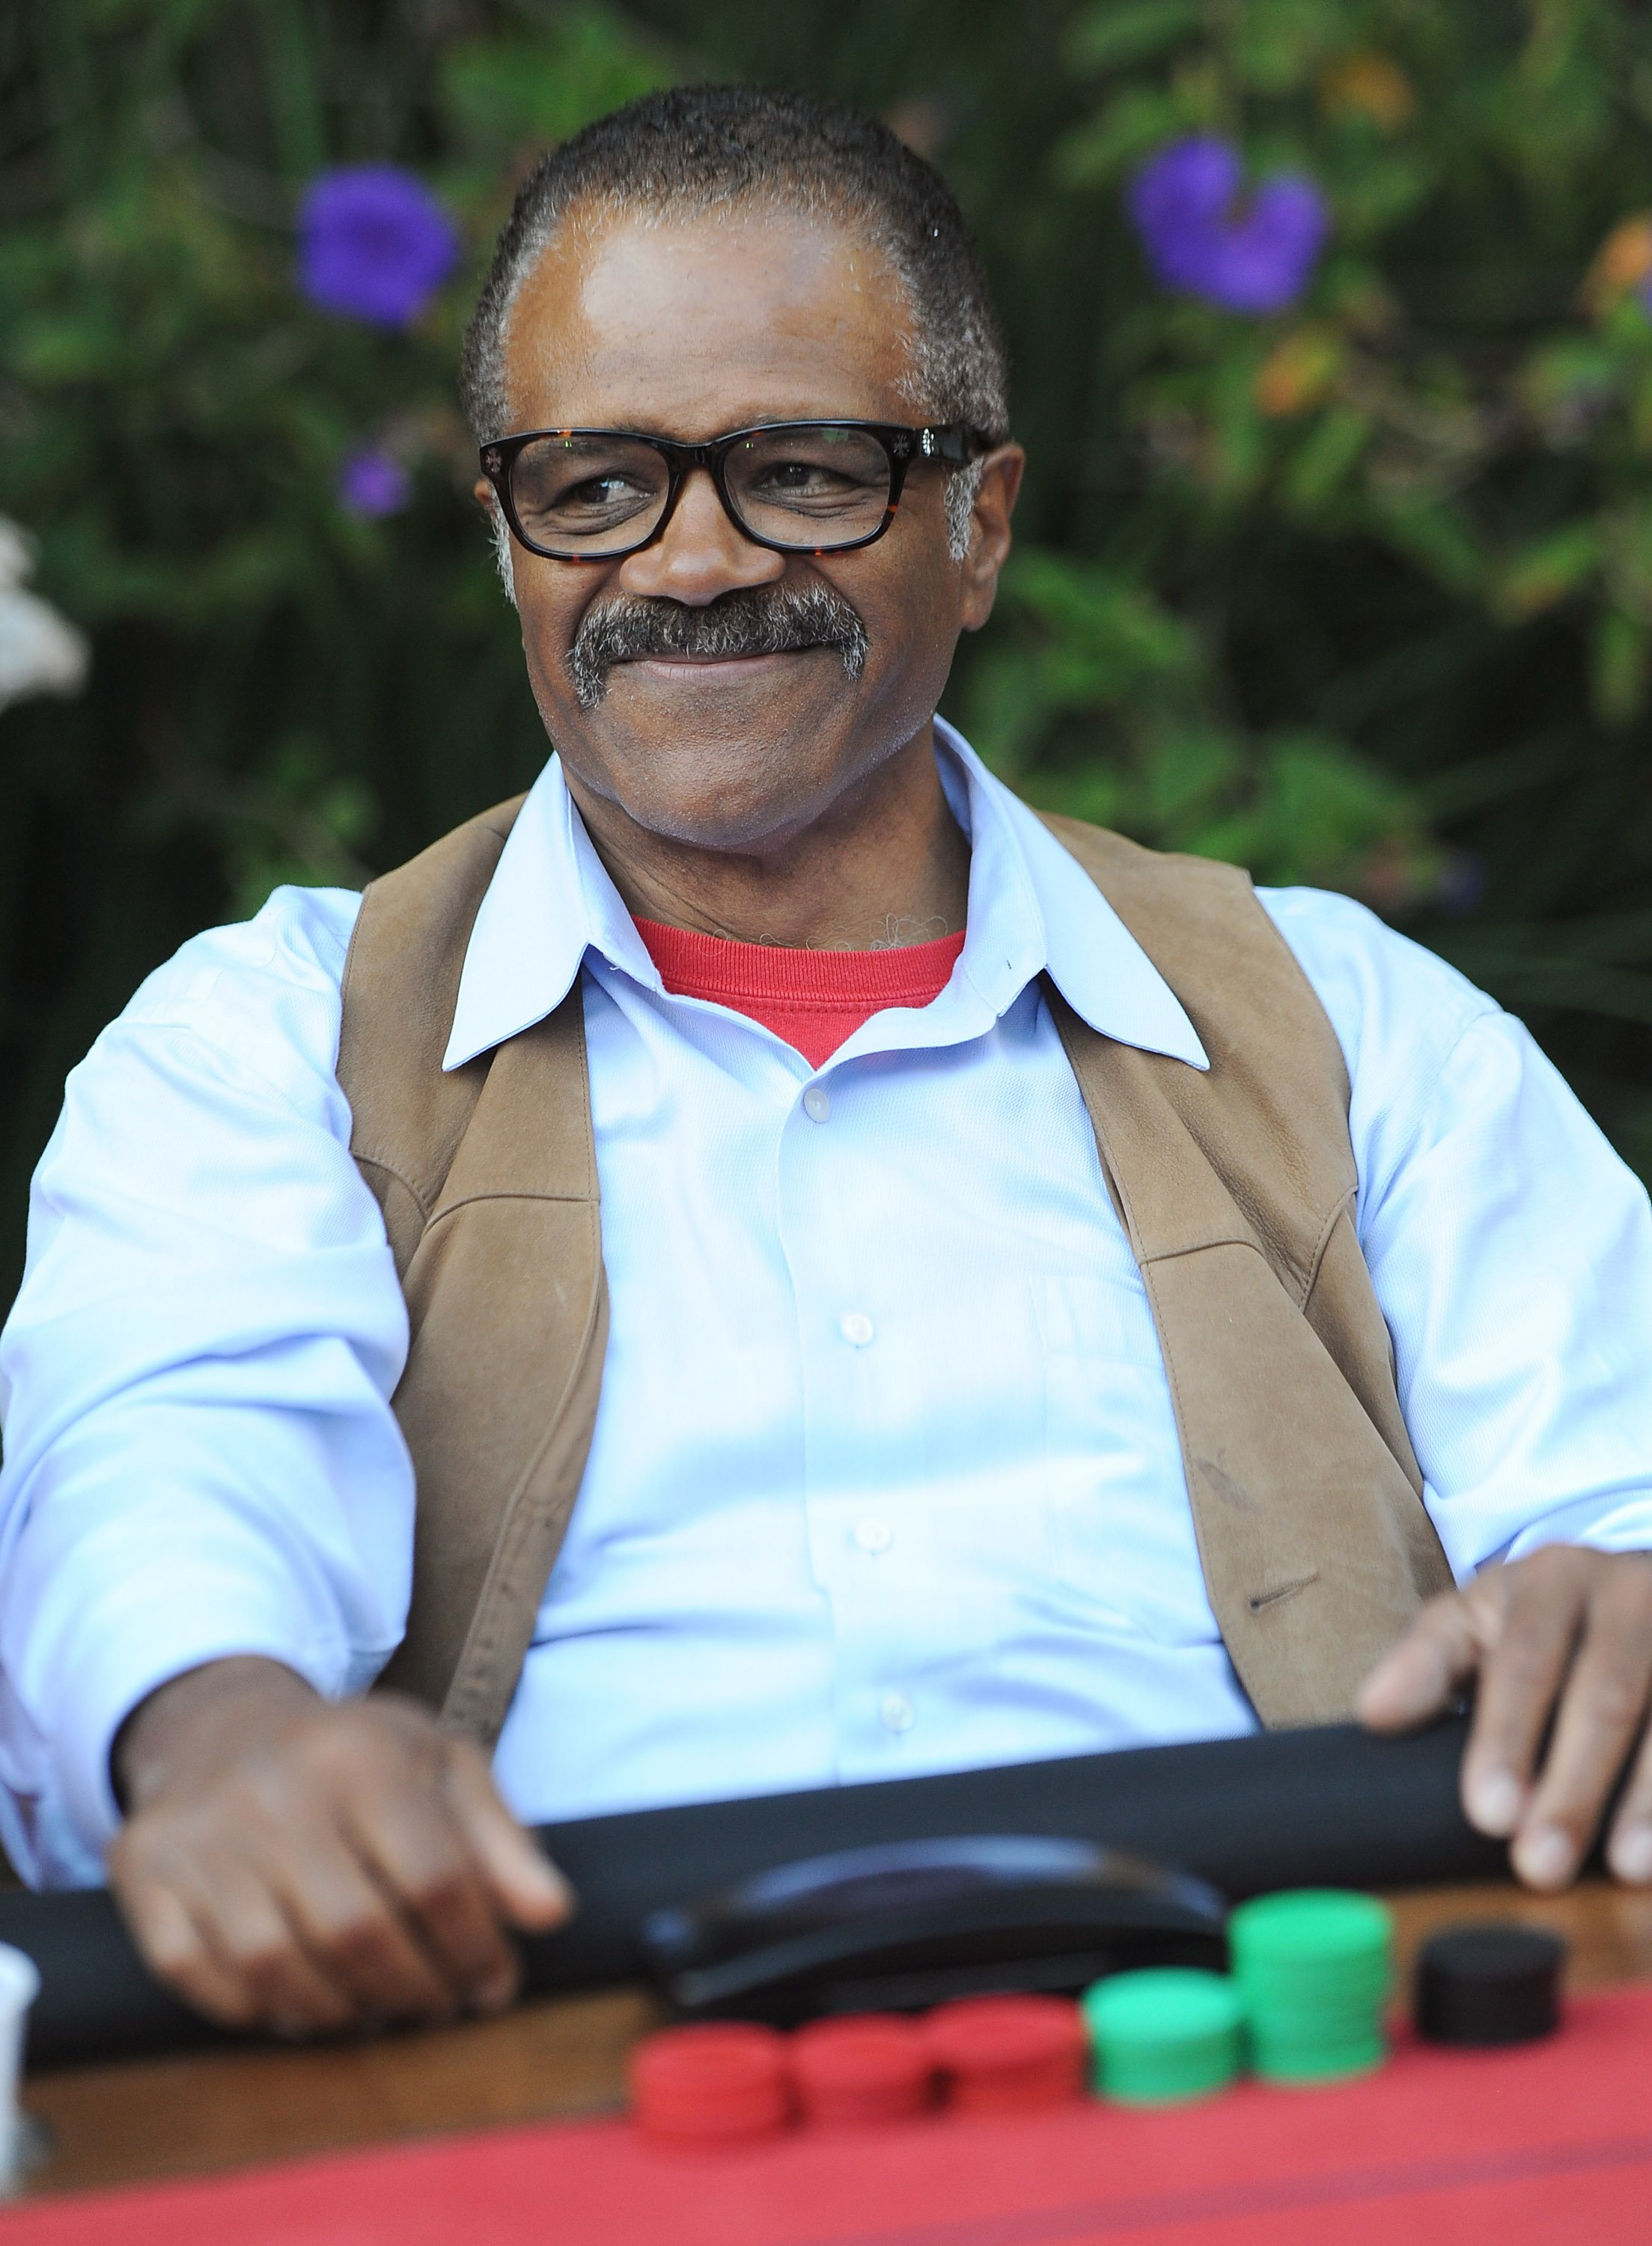 Ted Lange attends the SAG Foundation's 3rd Annual Poker Classic on August 24, 2013 | Photo: Getty Images